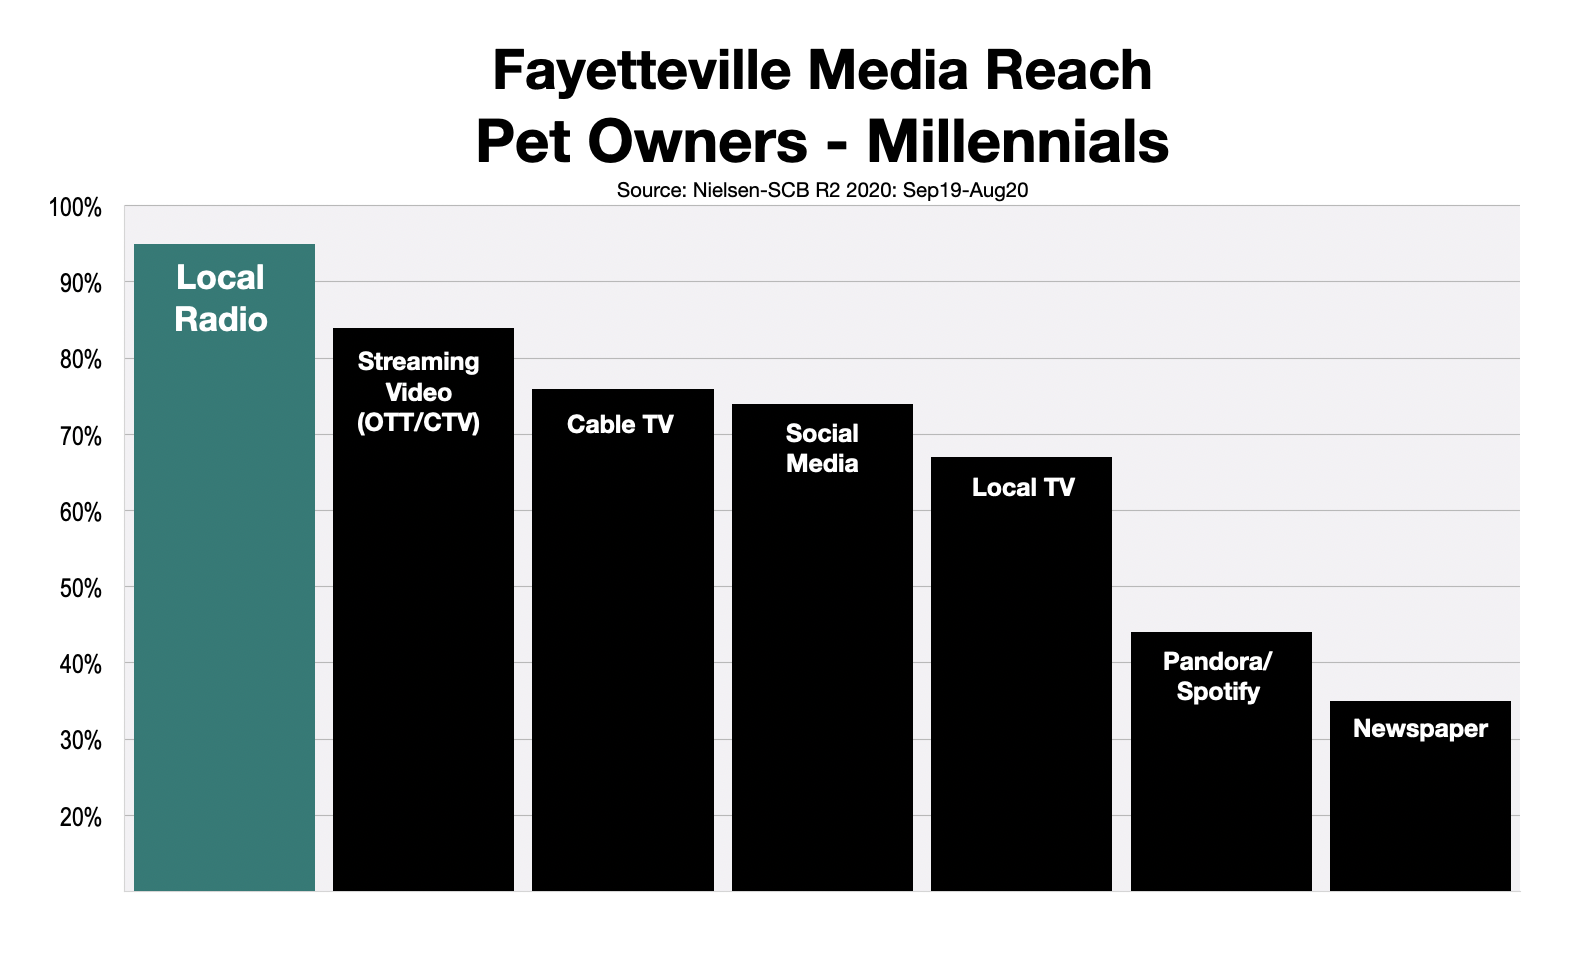 Advertise To Millennial Pet Owners In Fayetteville